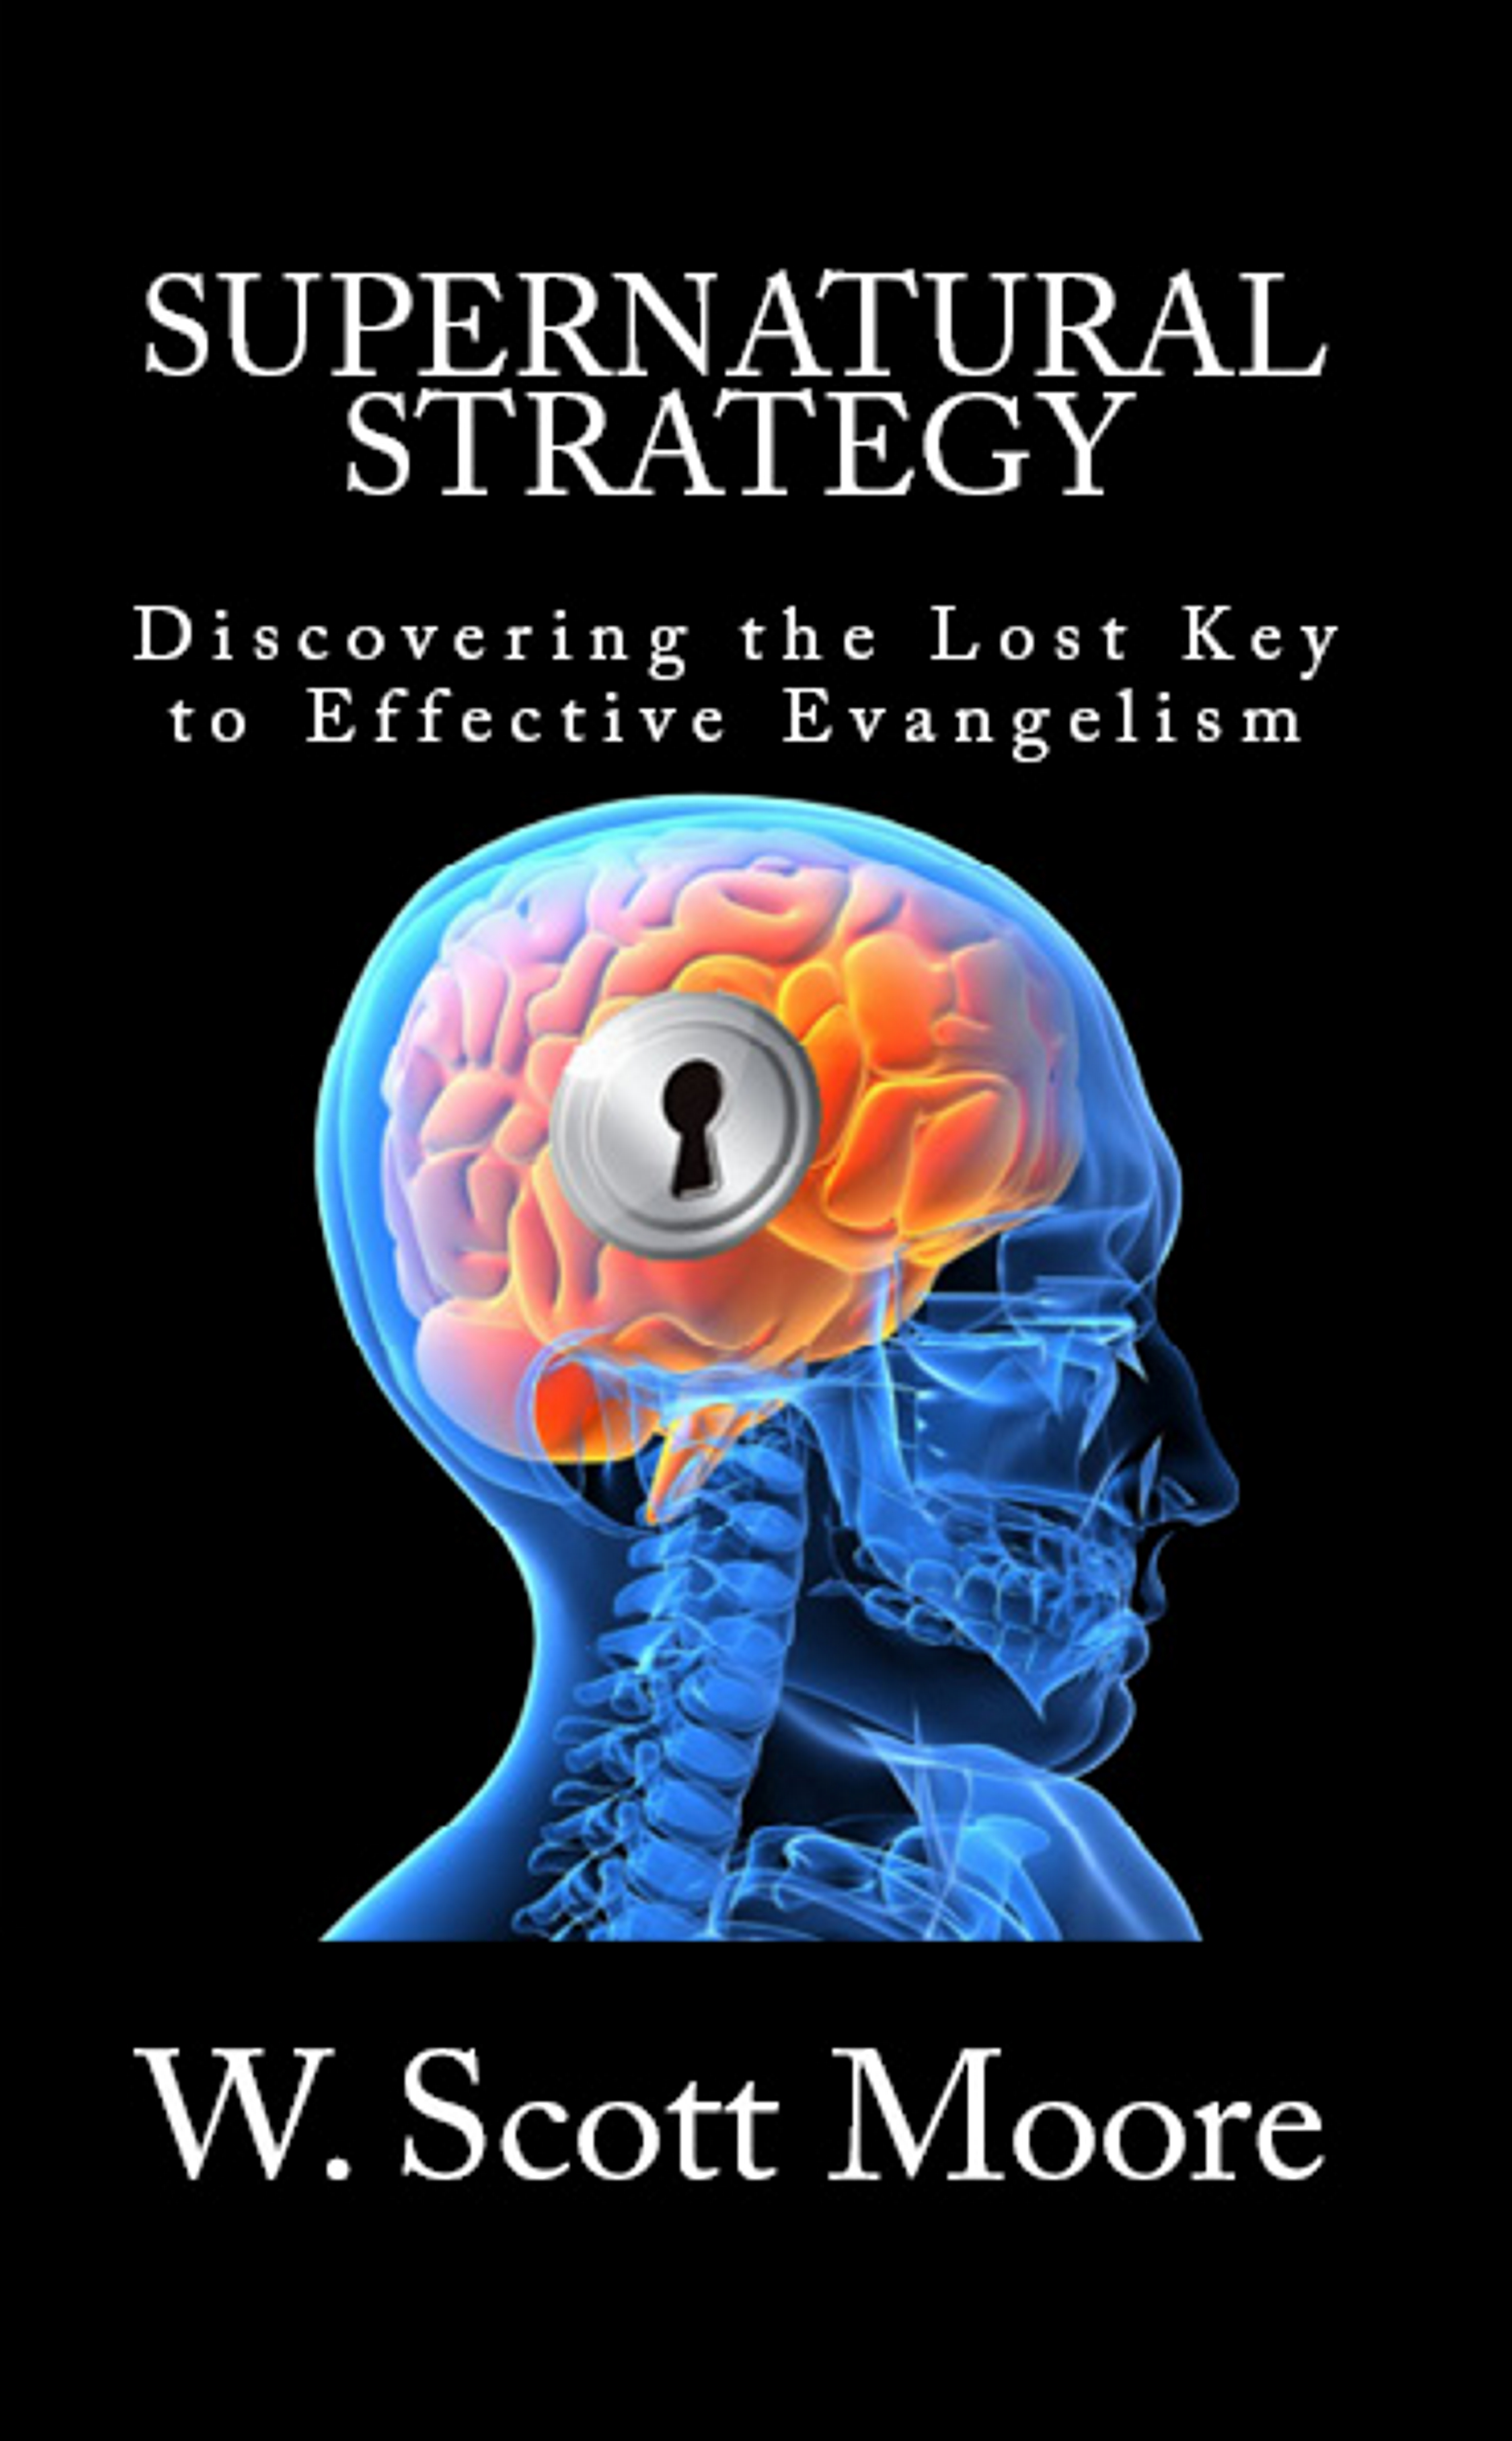 Supernatural Strategy: Discovering the Lost Key to Effective Evangelism